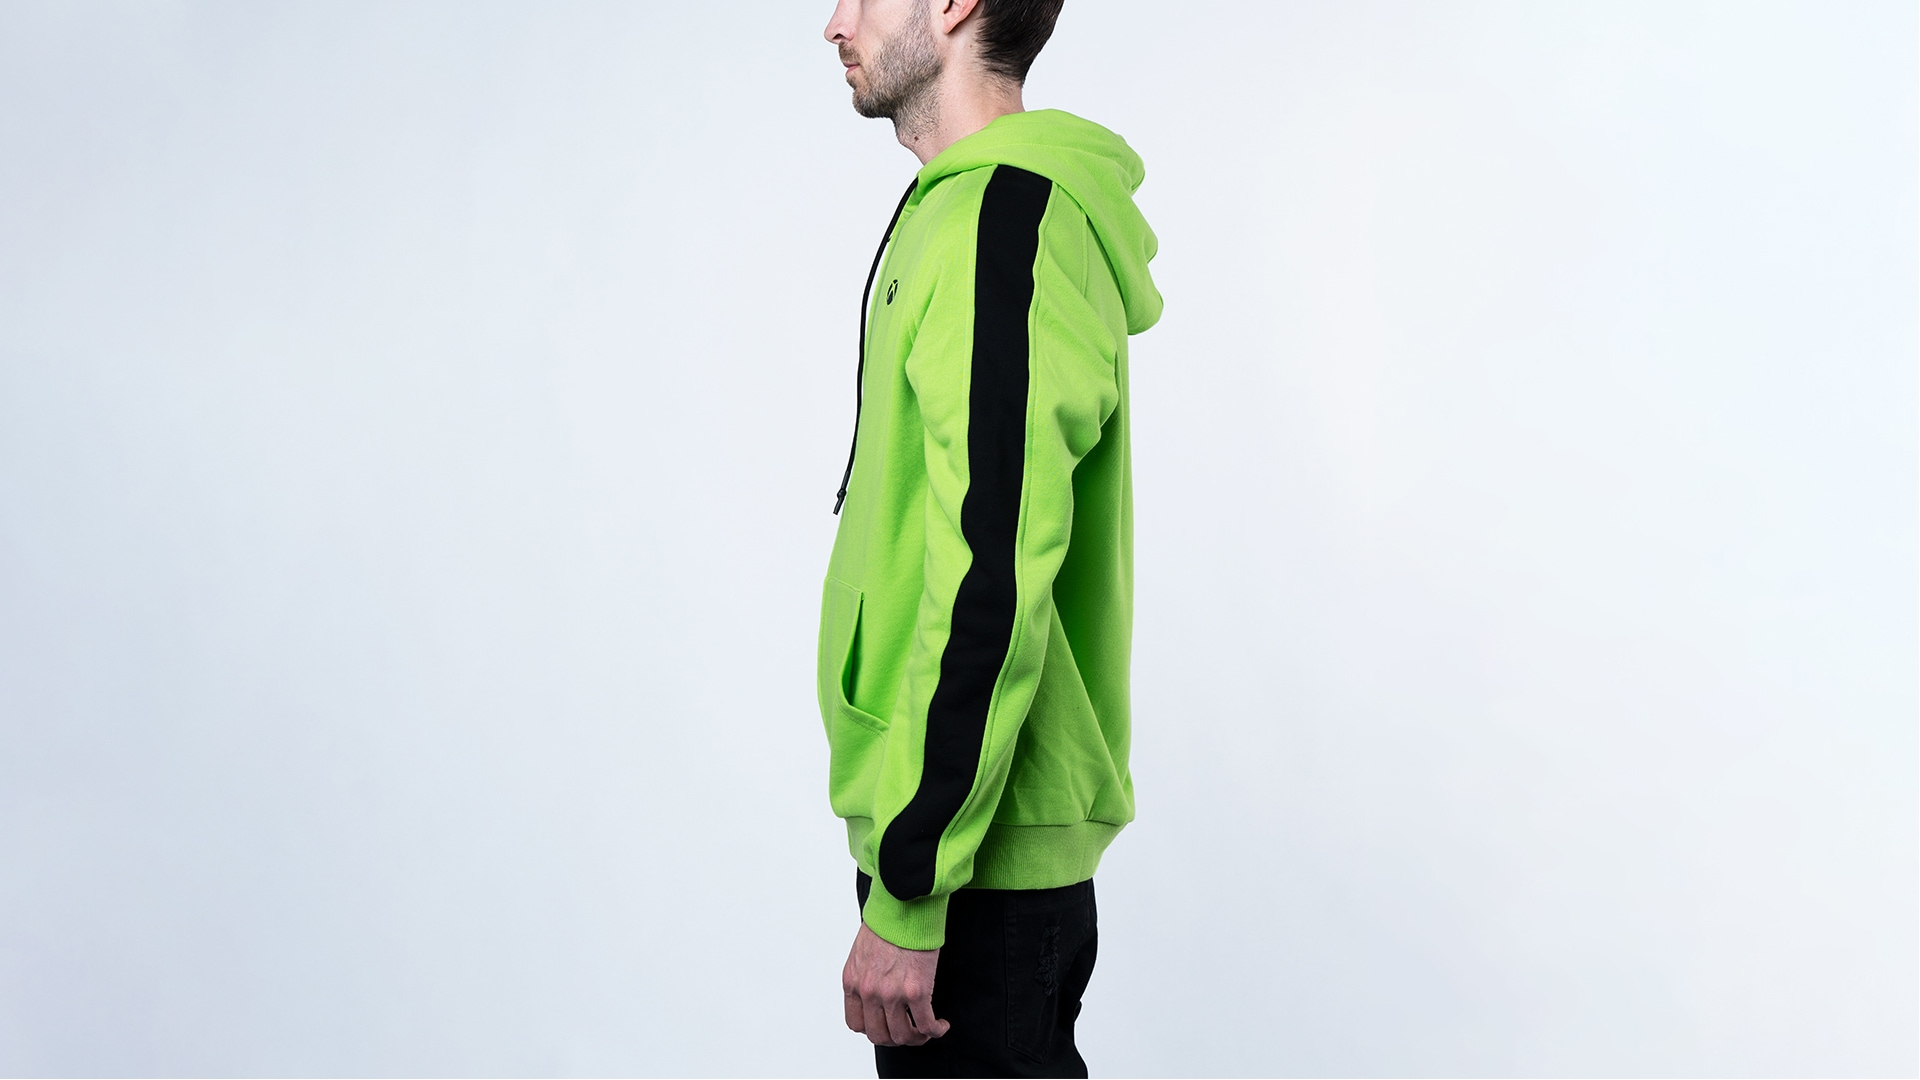 A man wearing the Color Block Hoodie